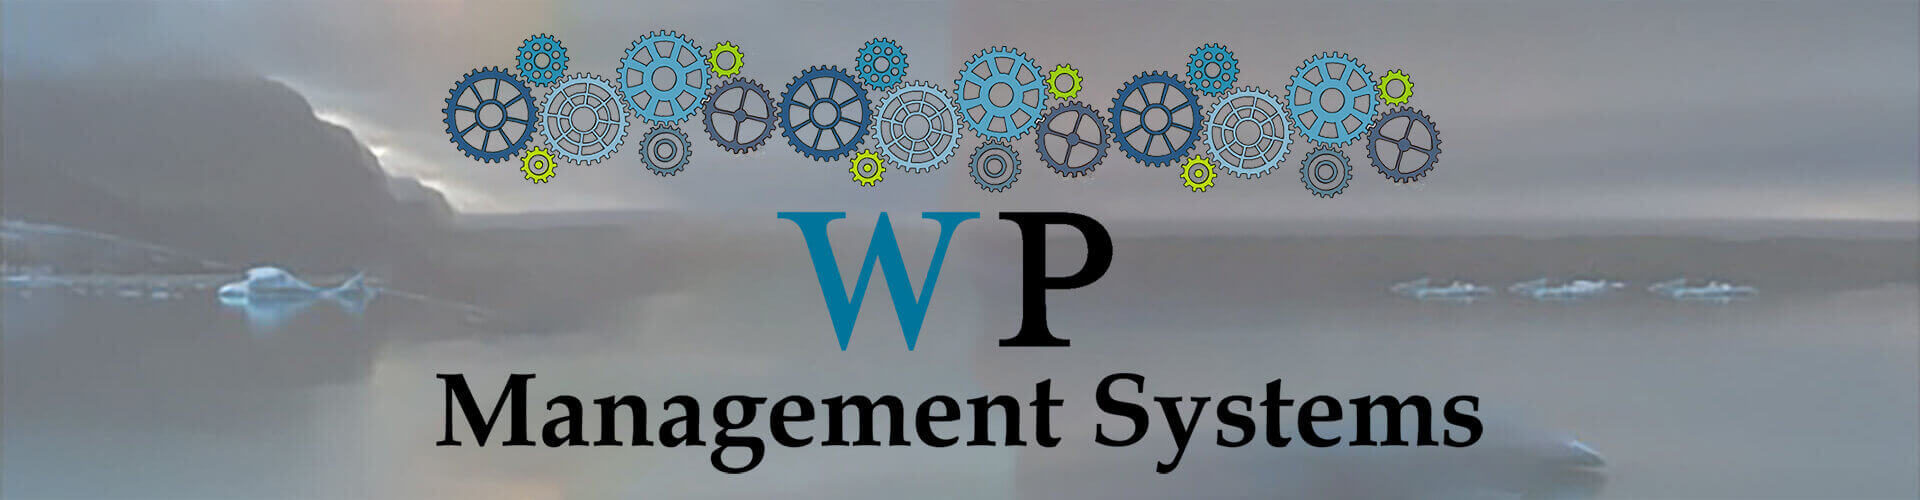 WordPress Management Systems Header Picture